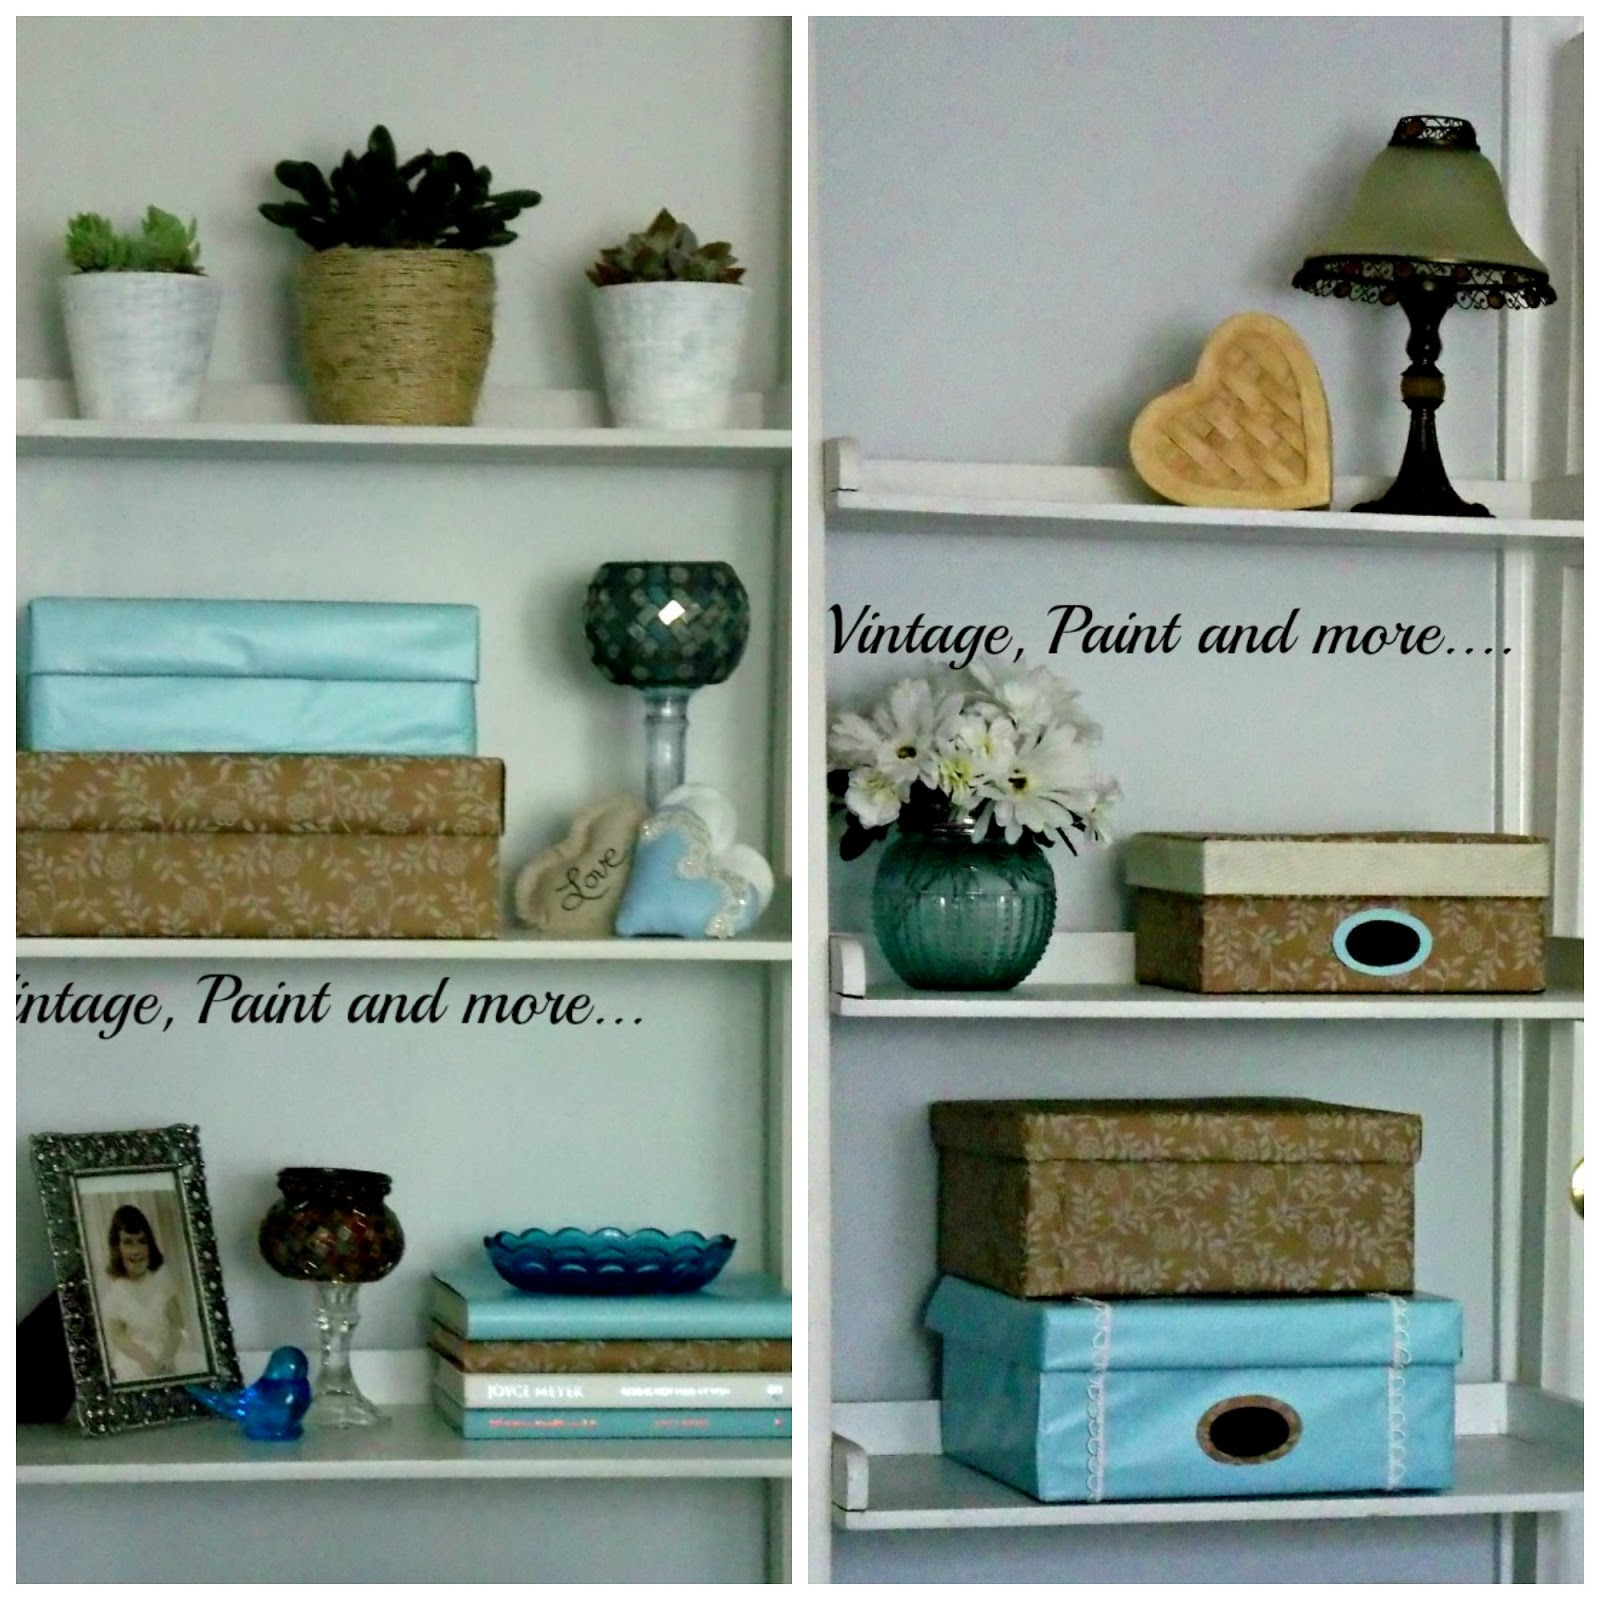 Vintage, Paint and more... decorative shelf storage, paper covered boxes used as decorative storage, recycled boxes for storage